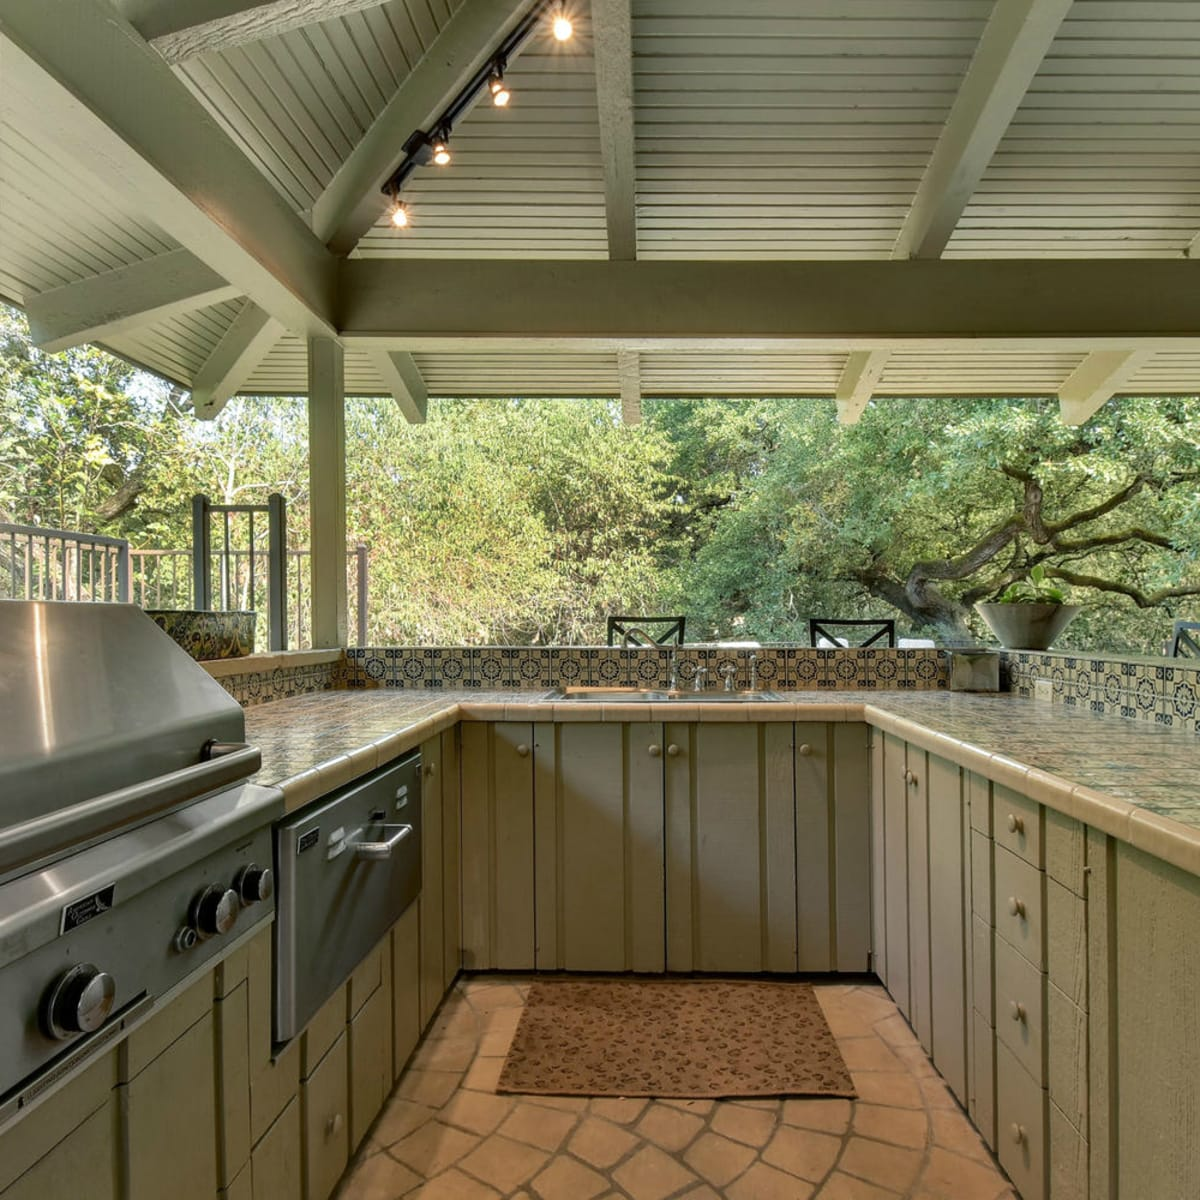 Austin house home Tarrytown 2610 Kenmore Court Ben Crenshaw February 2016 outdoor kitchen